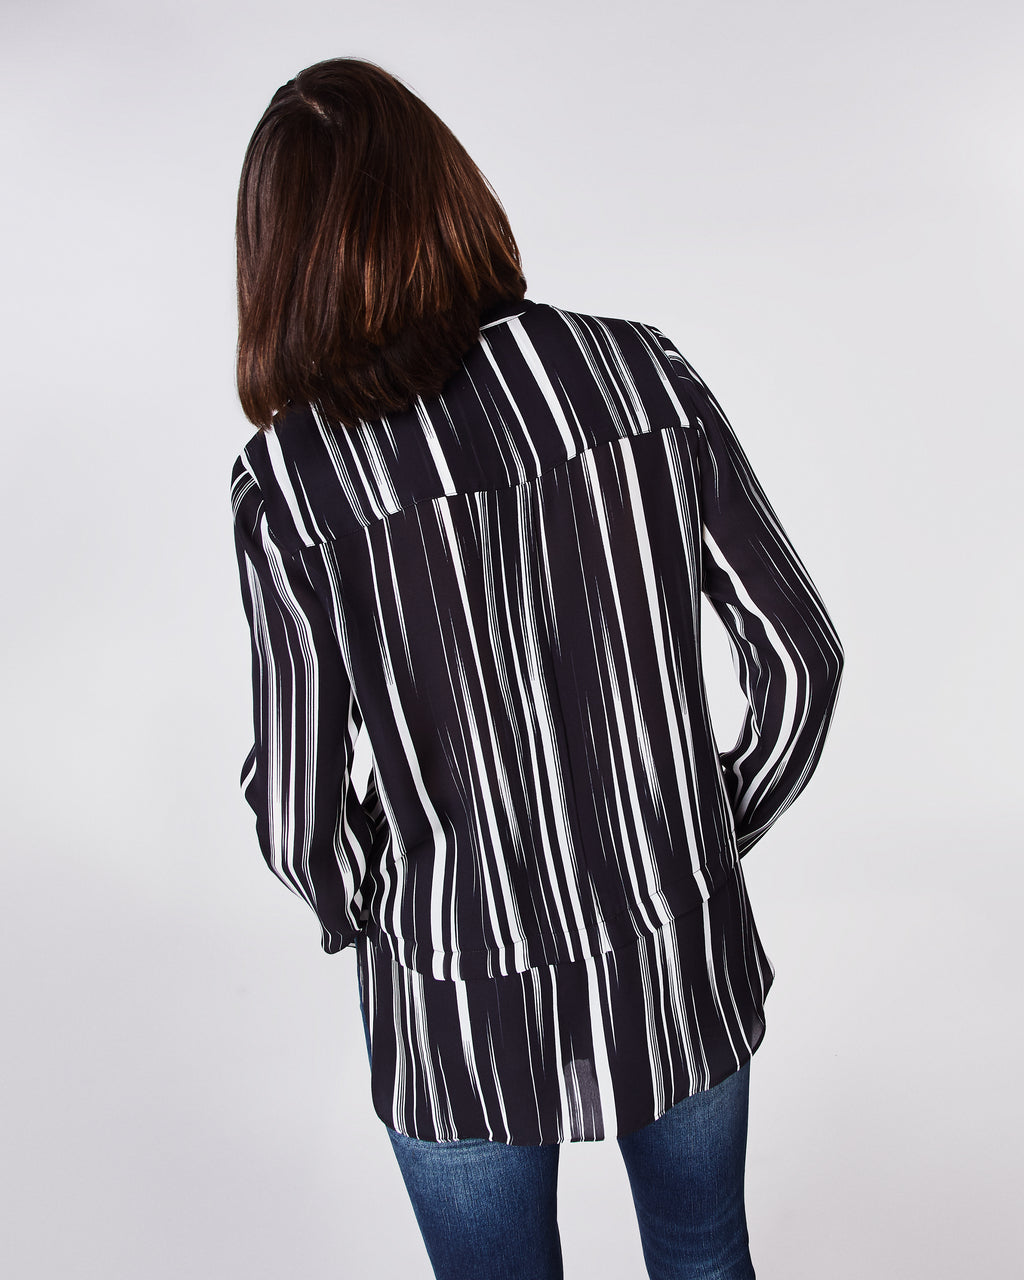 BH10398 - BARCODE LONG SLEEVE BLOUSE - tops - blouses - Striking lines in black and white on this versatile long-sleeve top. Pair with denim for a casual look or black pants for a something a little more dressy